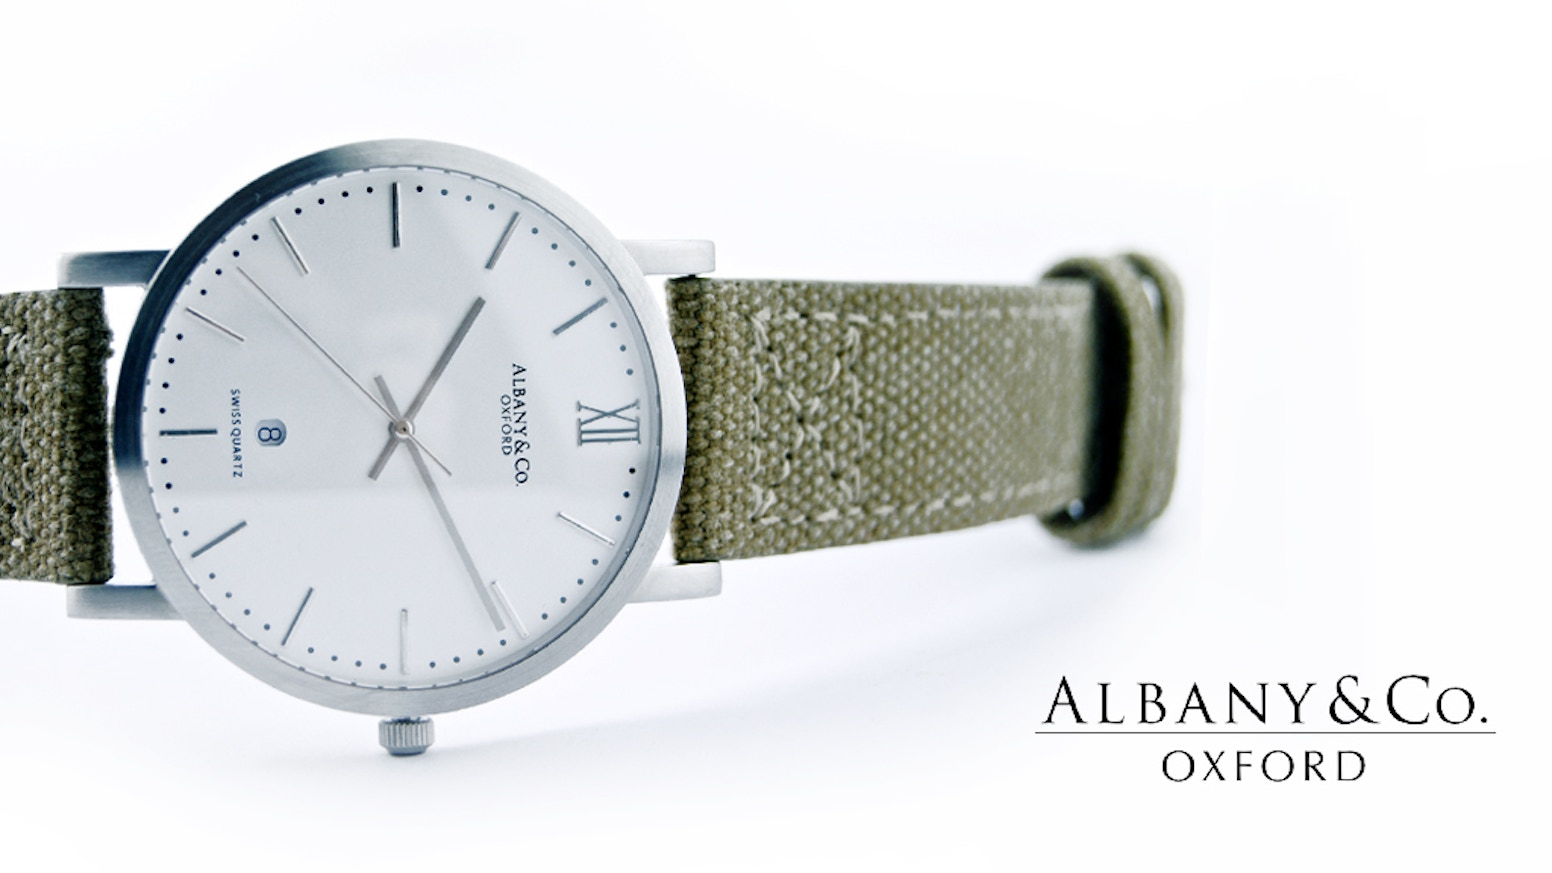 www.albanyandco.com. 100m water resistant watch. Swiss-made Ronda movement, Italian Leather. 50+ colour combos.